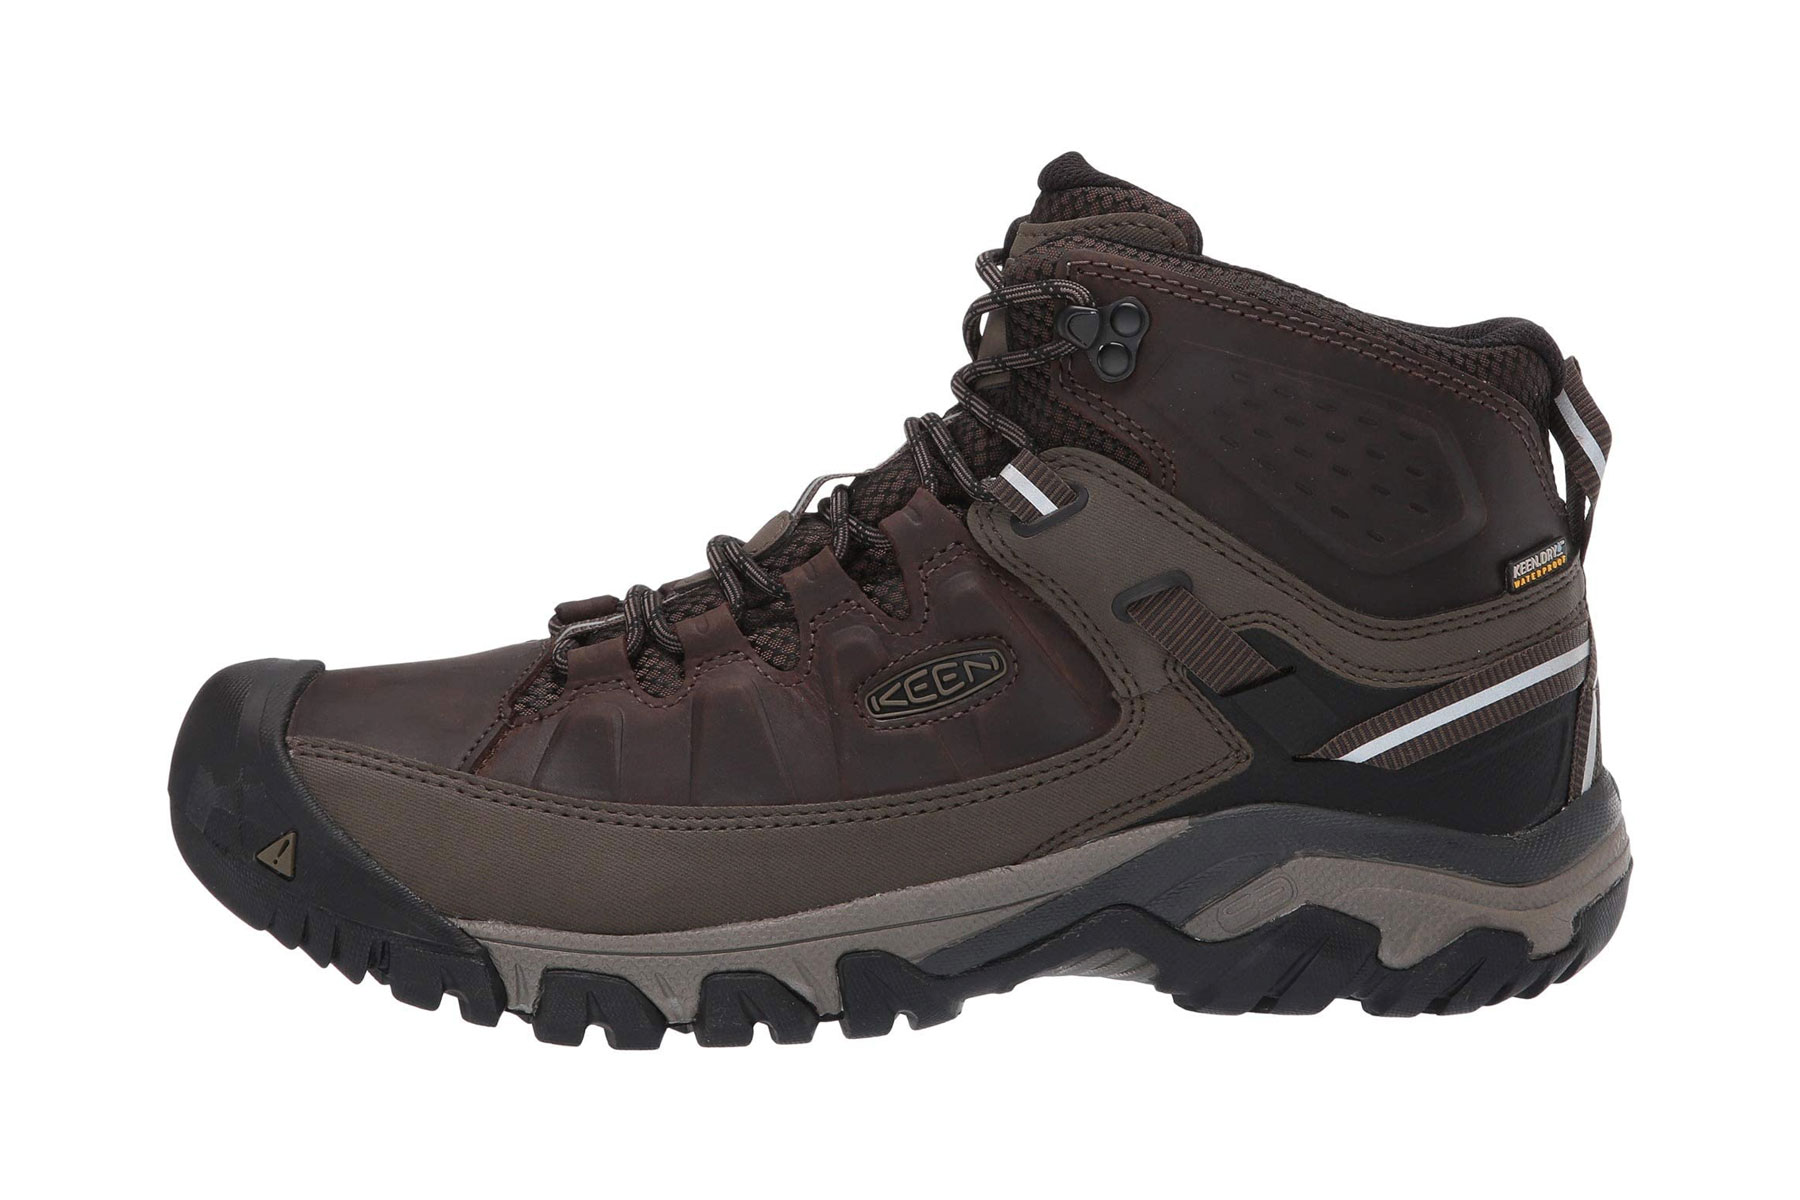 Men's brown and black hiking boot